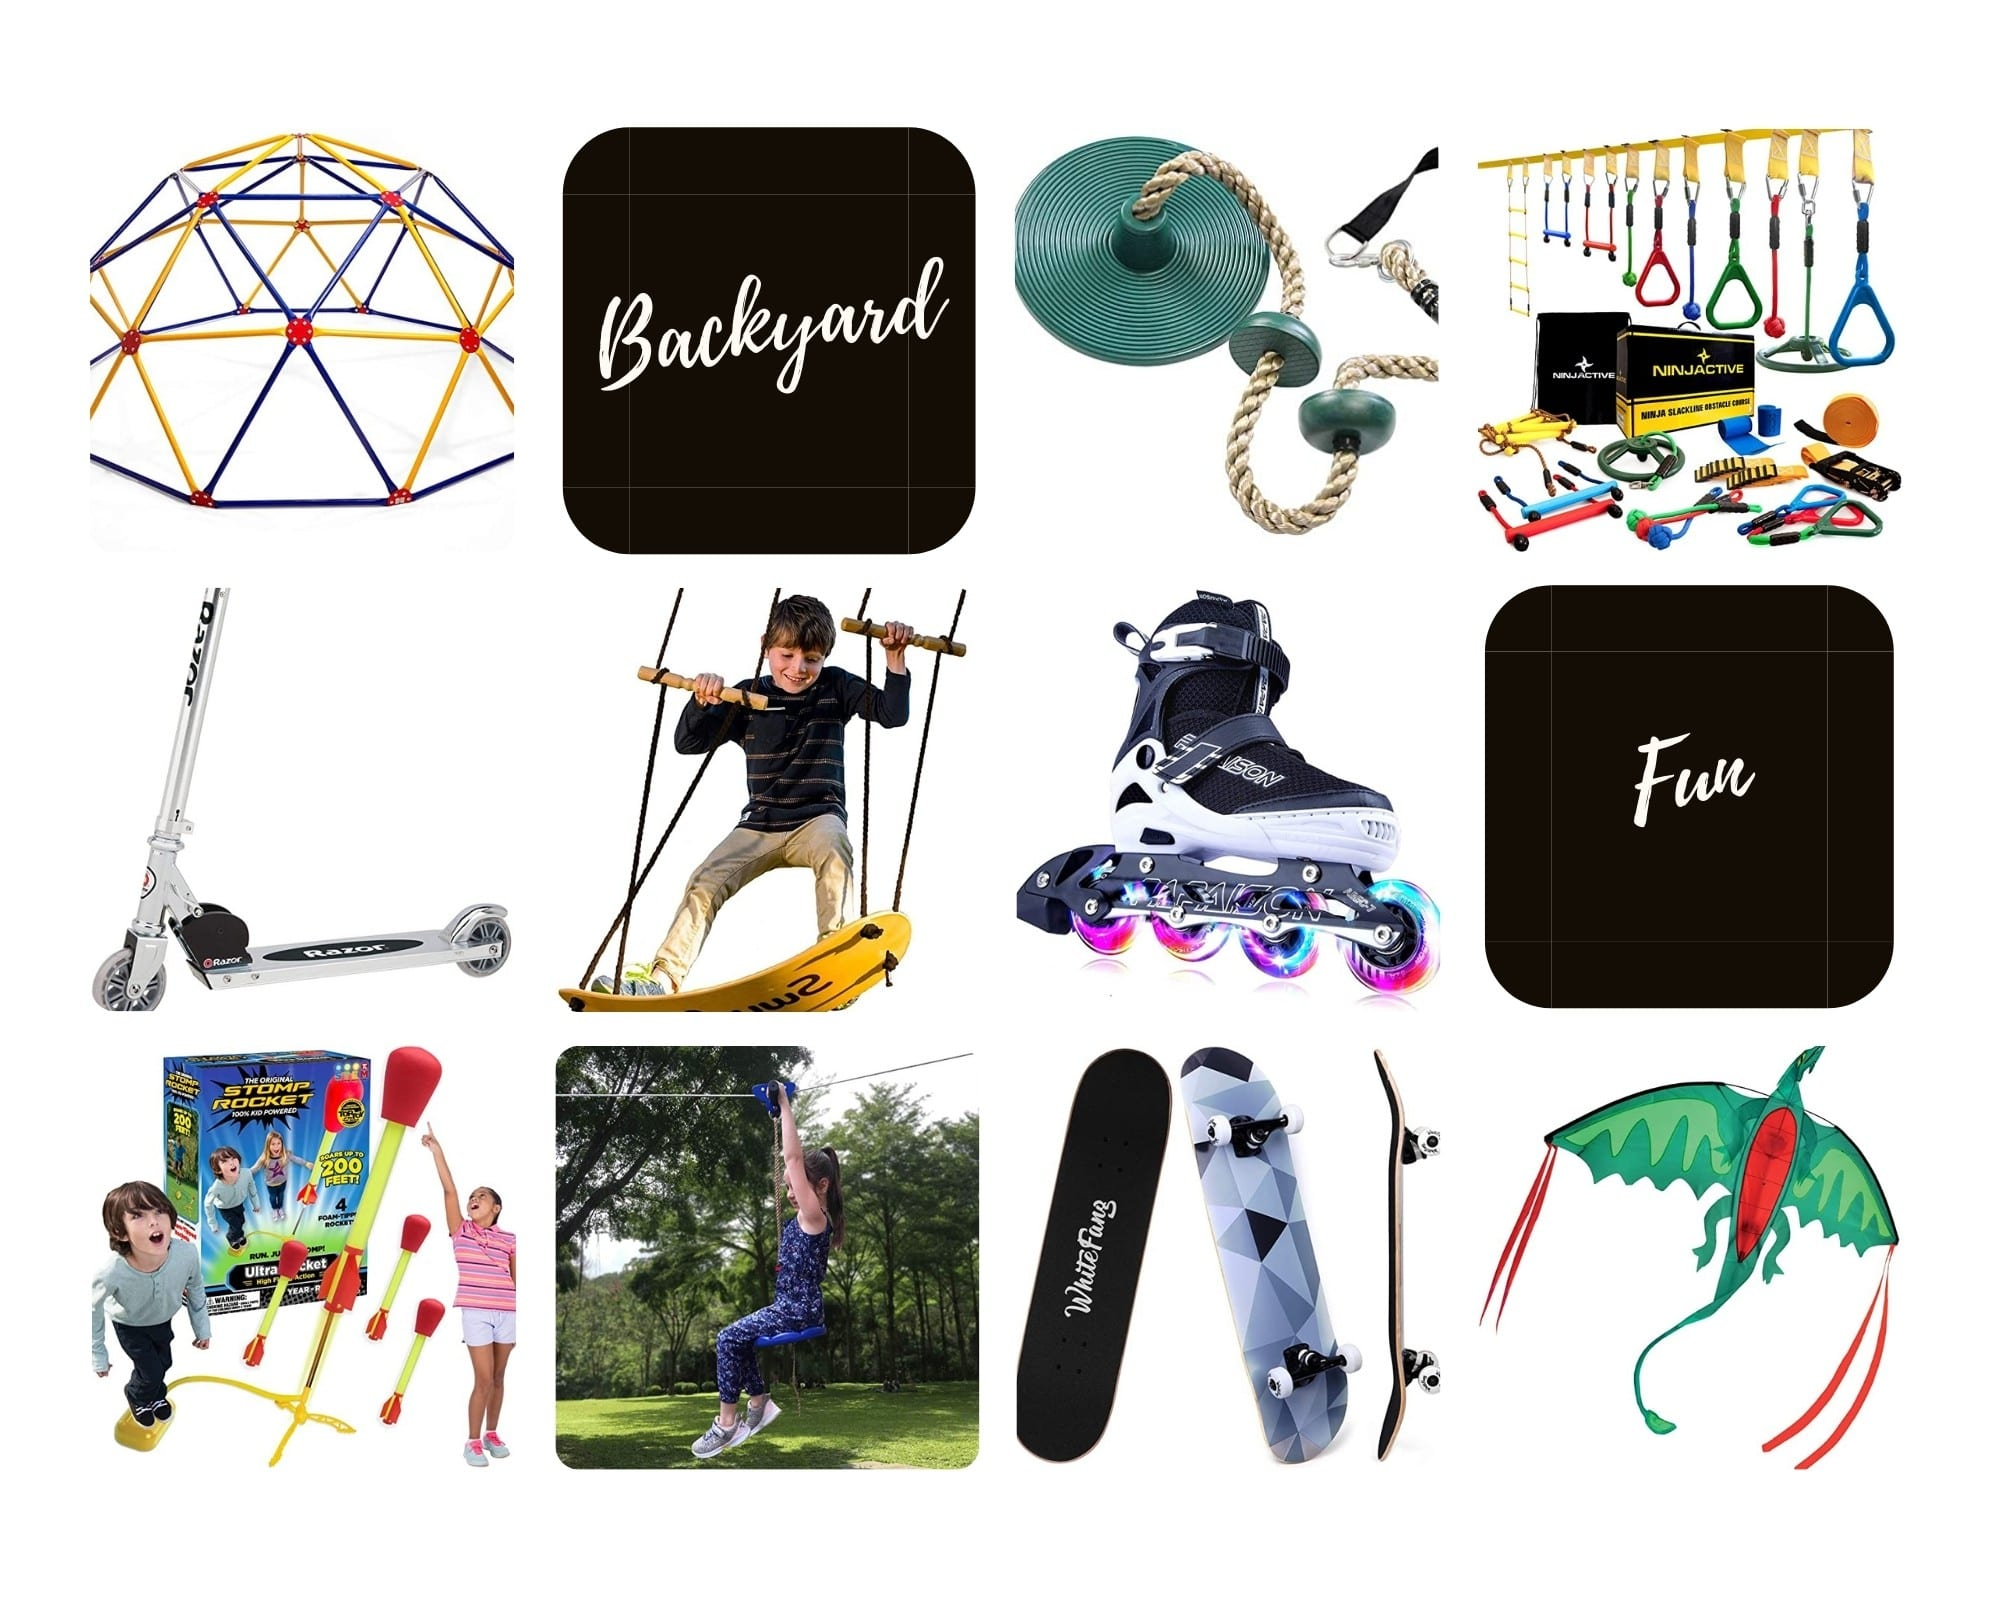 Product Images of the Top 10 Backyard Adventure Gifts for Outdoorsy Kids to Follow